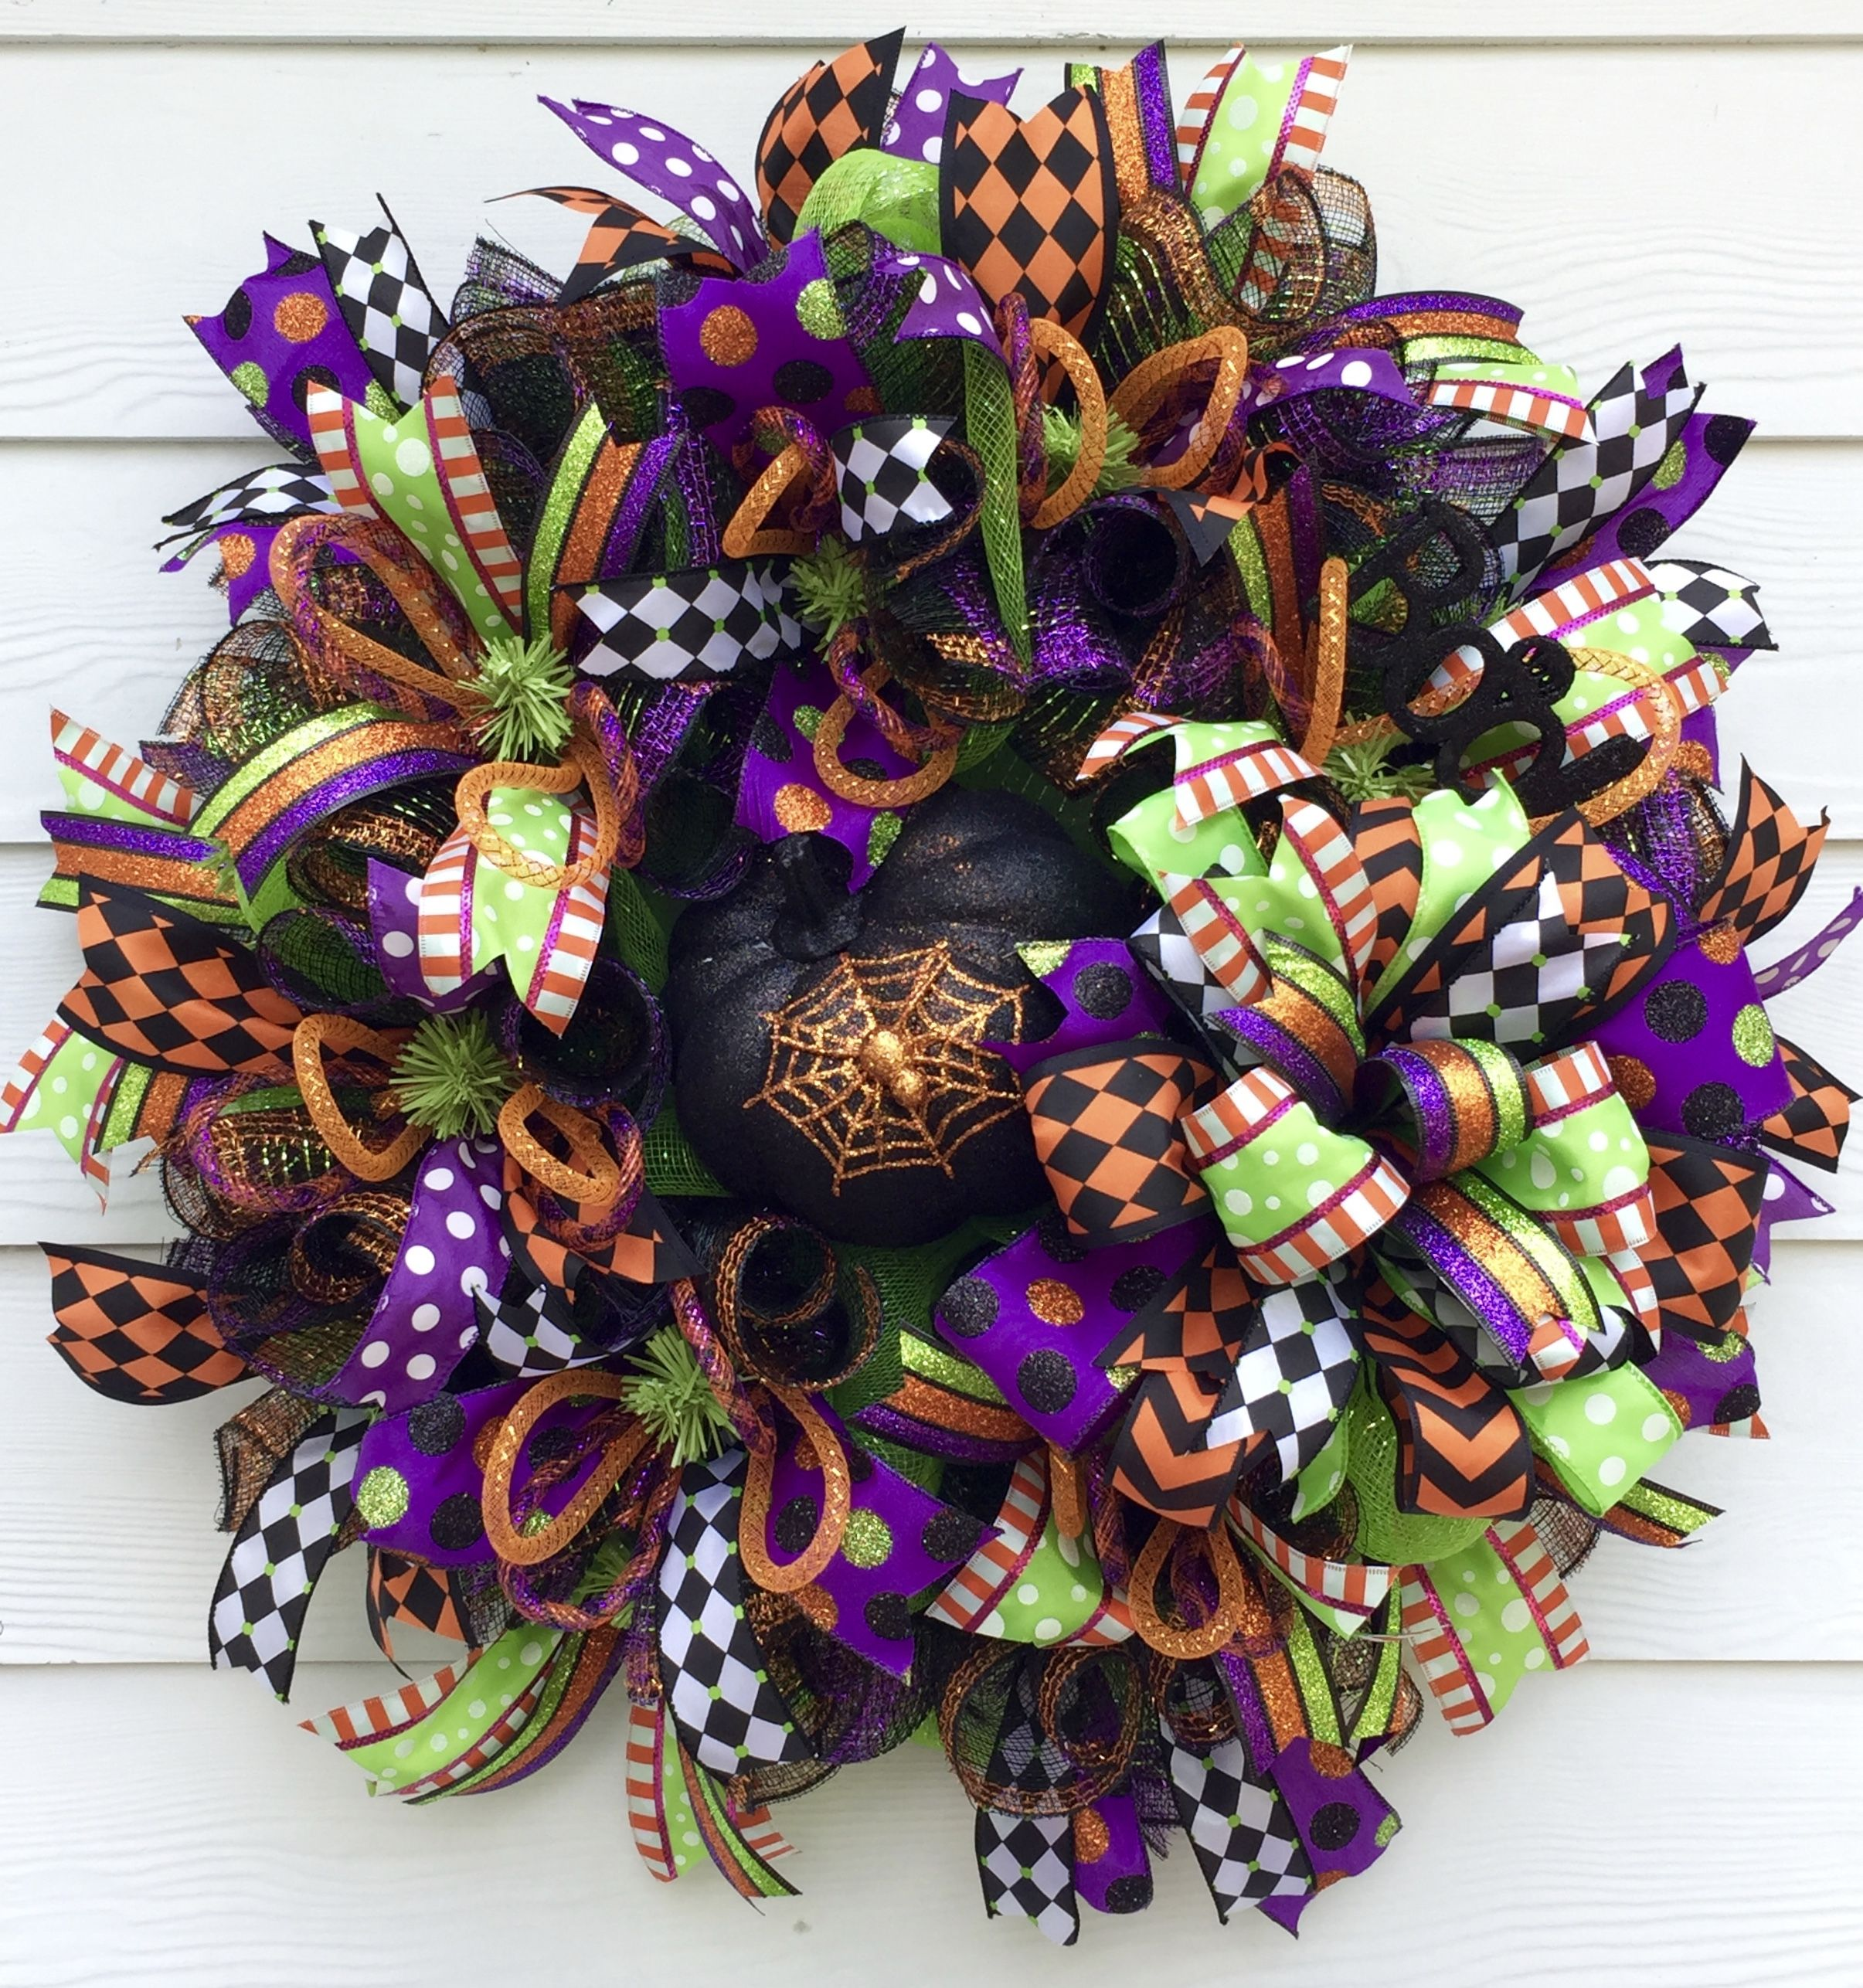 Decorative Christmas Wreaths For Every Occasion